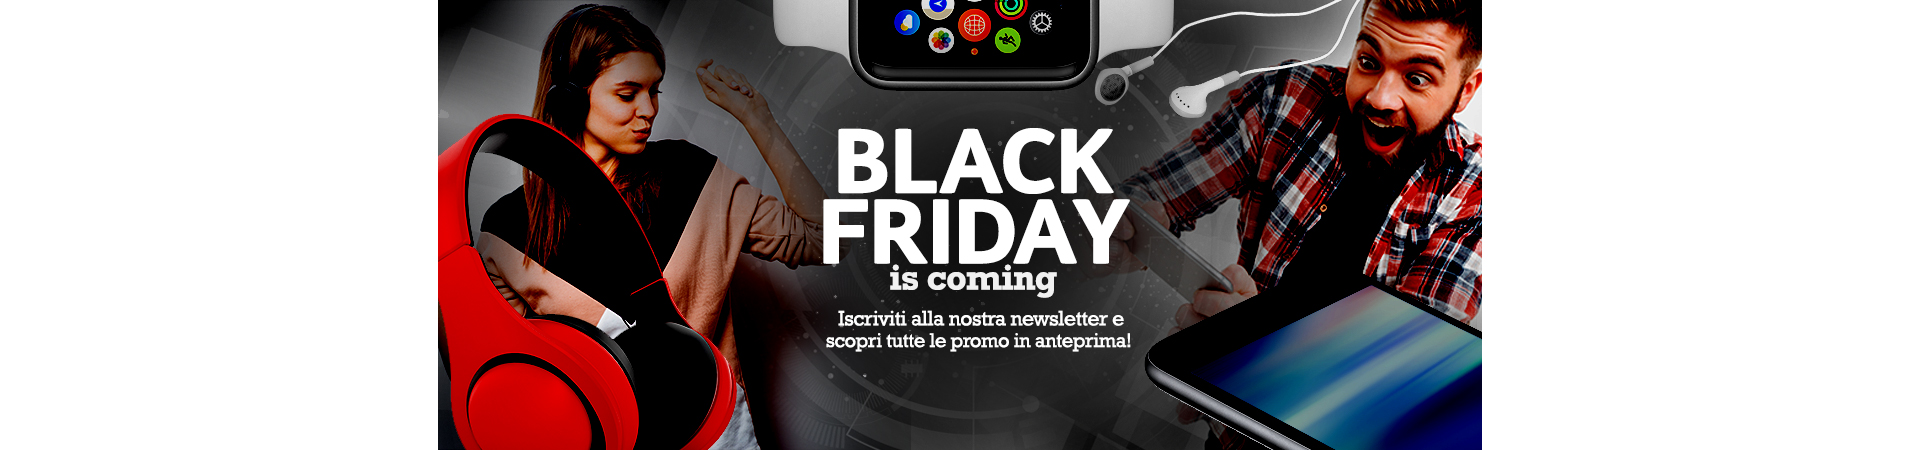 banner_blackfriday_1920x450_desk